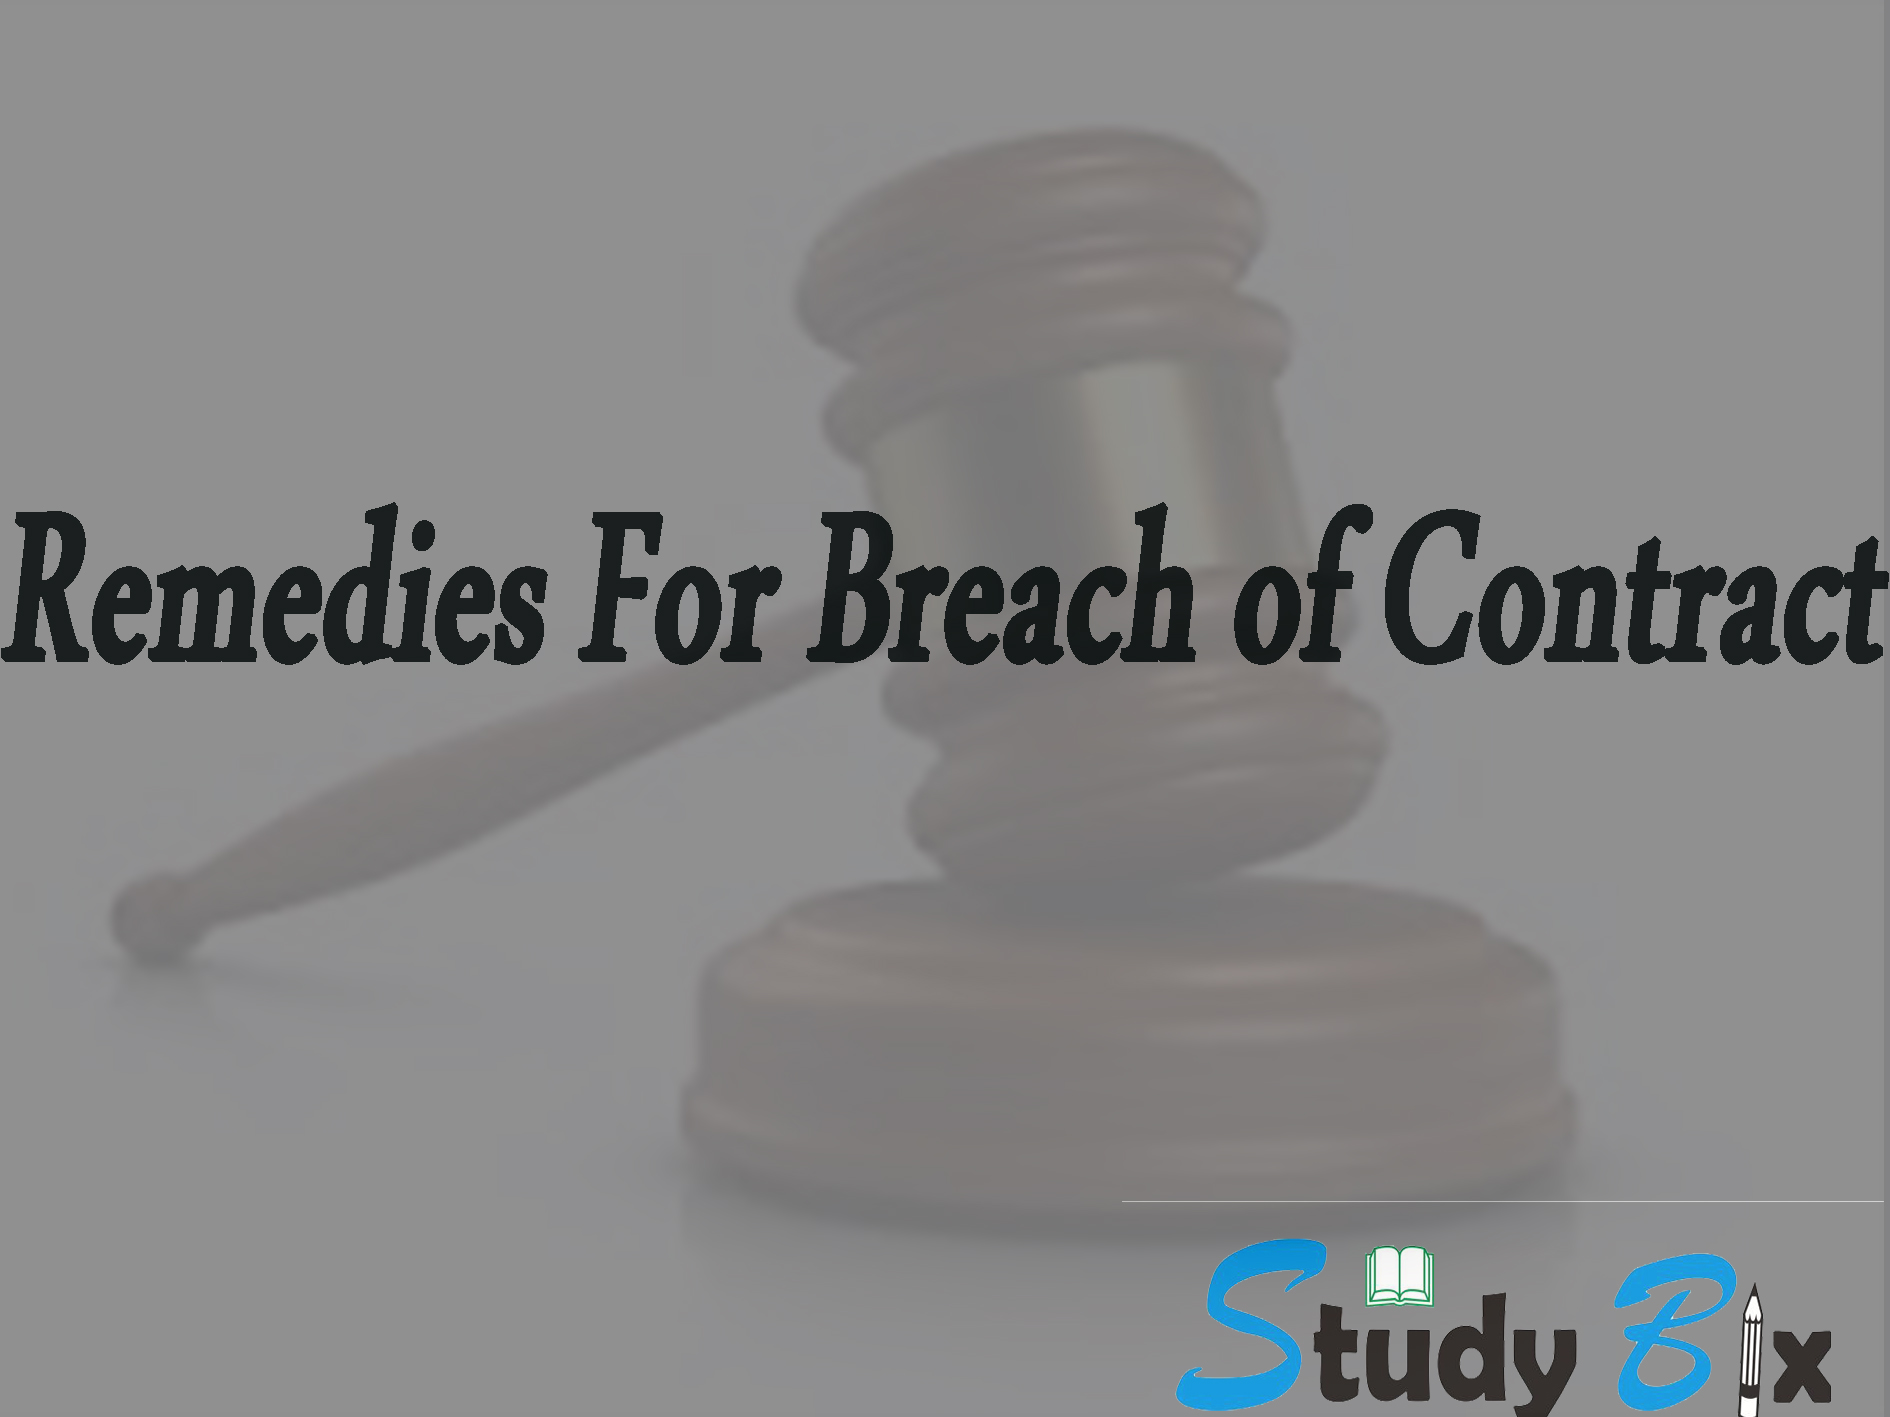 remedies for breach of contract essay Short essay on suit for damages- remedies for breach of contract article shared by damages are a monetary compensation allowed to the injured party for the loss or injury suffered by him as a result of the breach of contract the funda­mental principle underlying damages is not punishment but compensation.